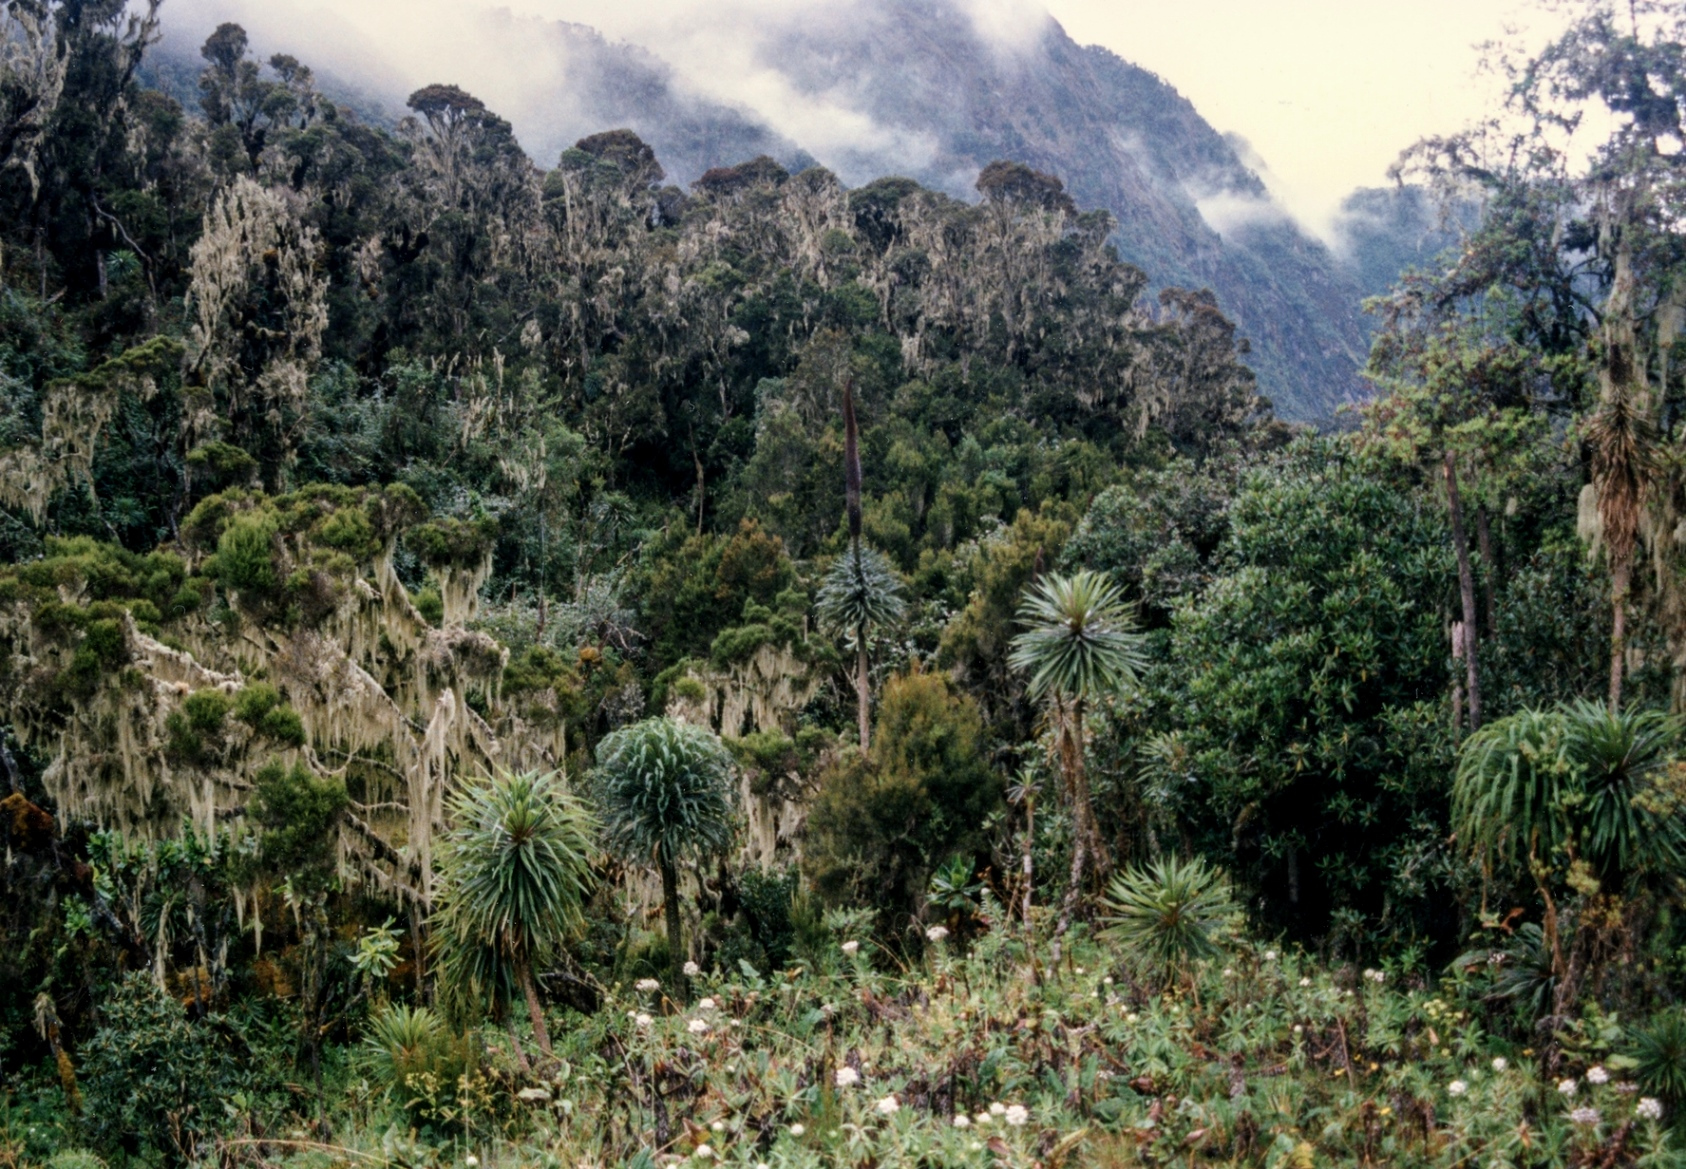 Montane forest in Uganda's Rwenzori Mountains covers difficult terrain with a unique tree and shrub community.